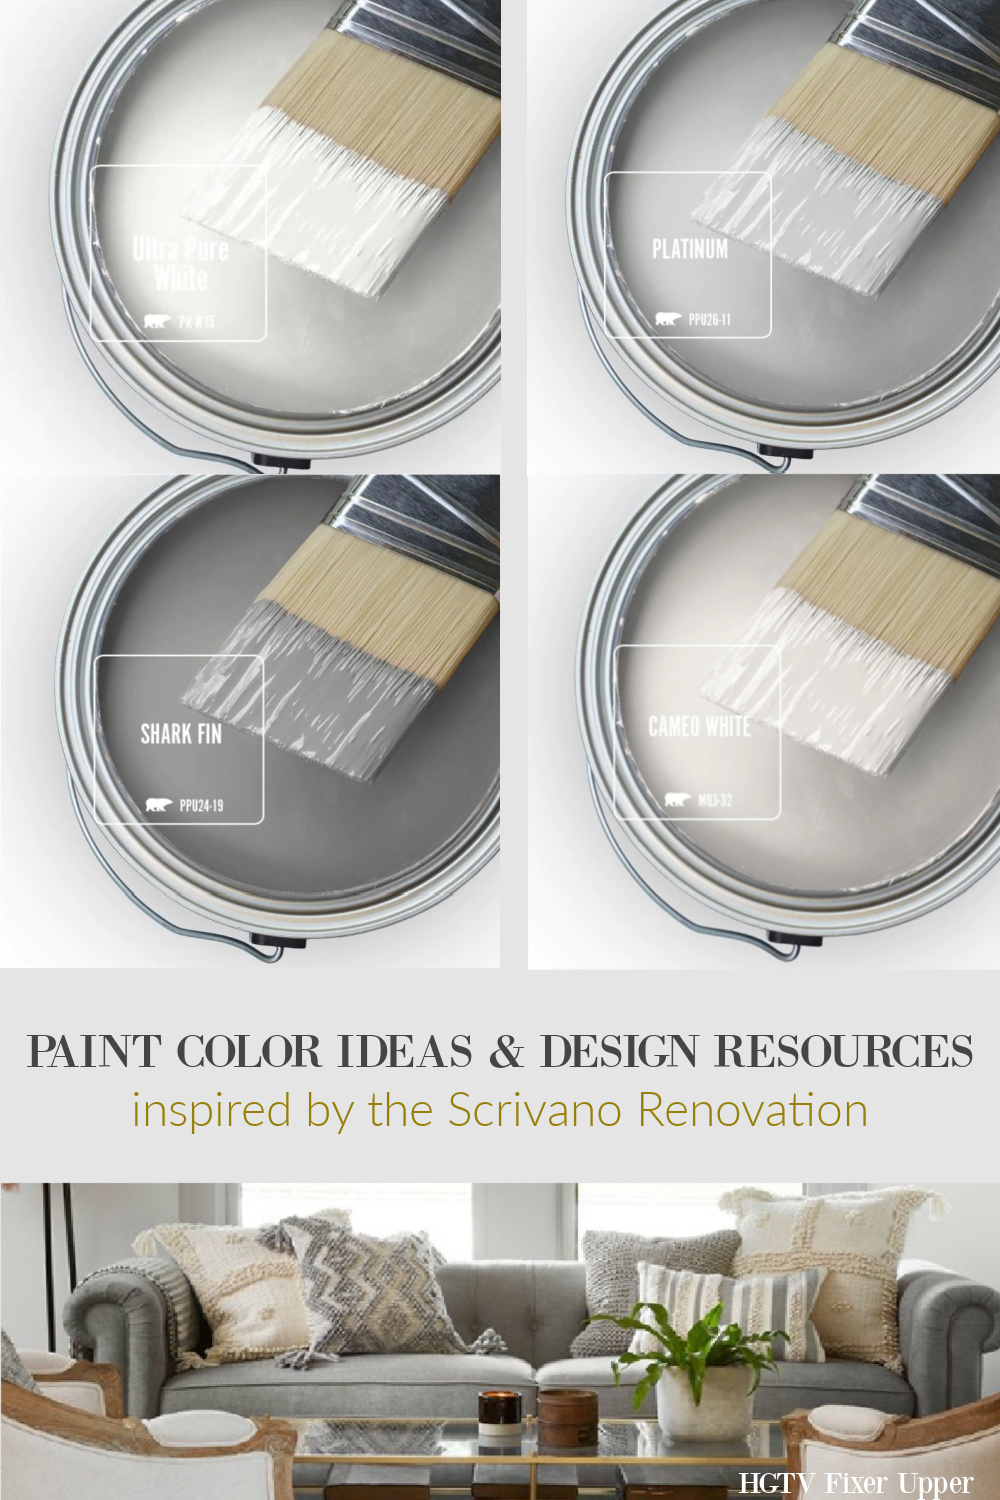 Paint colors and design resources to get the look of Scrivano cottage on HGTV Fixer Upper.